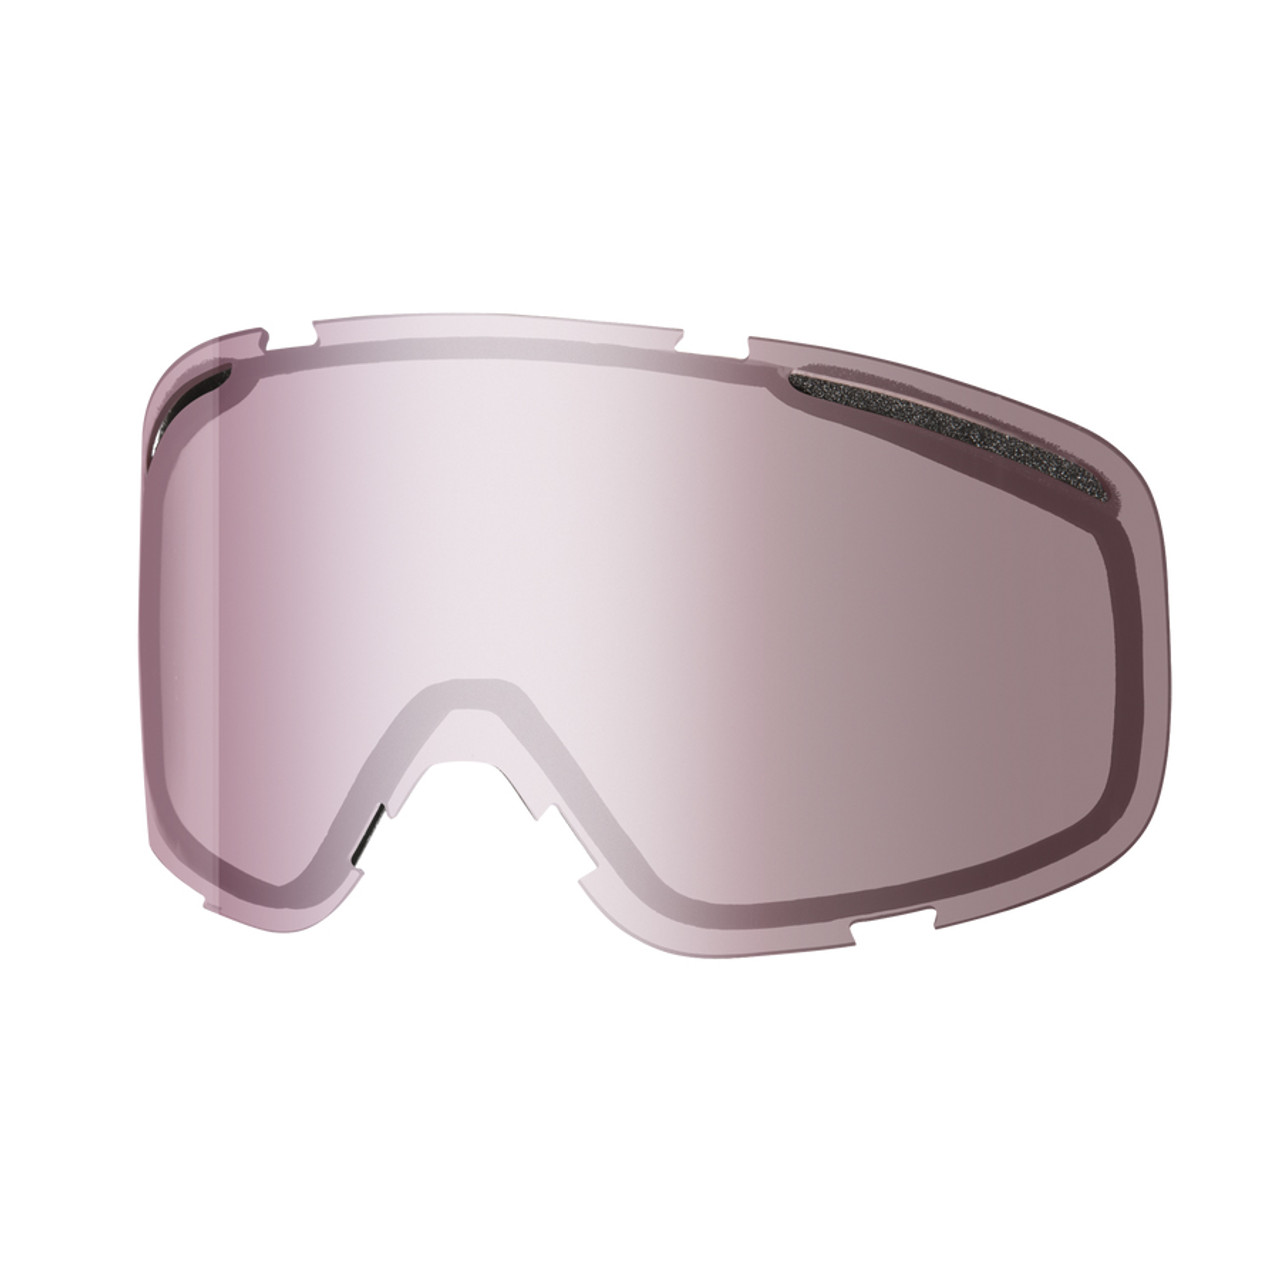 RC36 - Smith Vogue Replacement Lenses